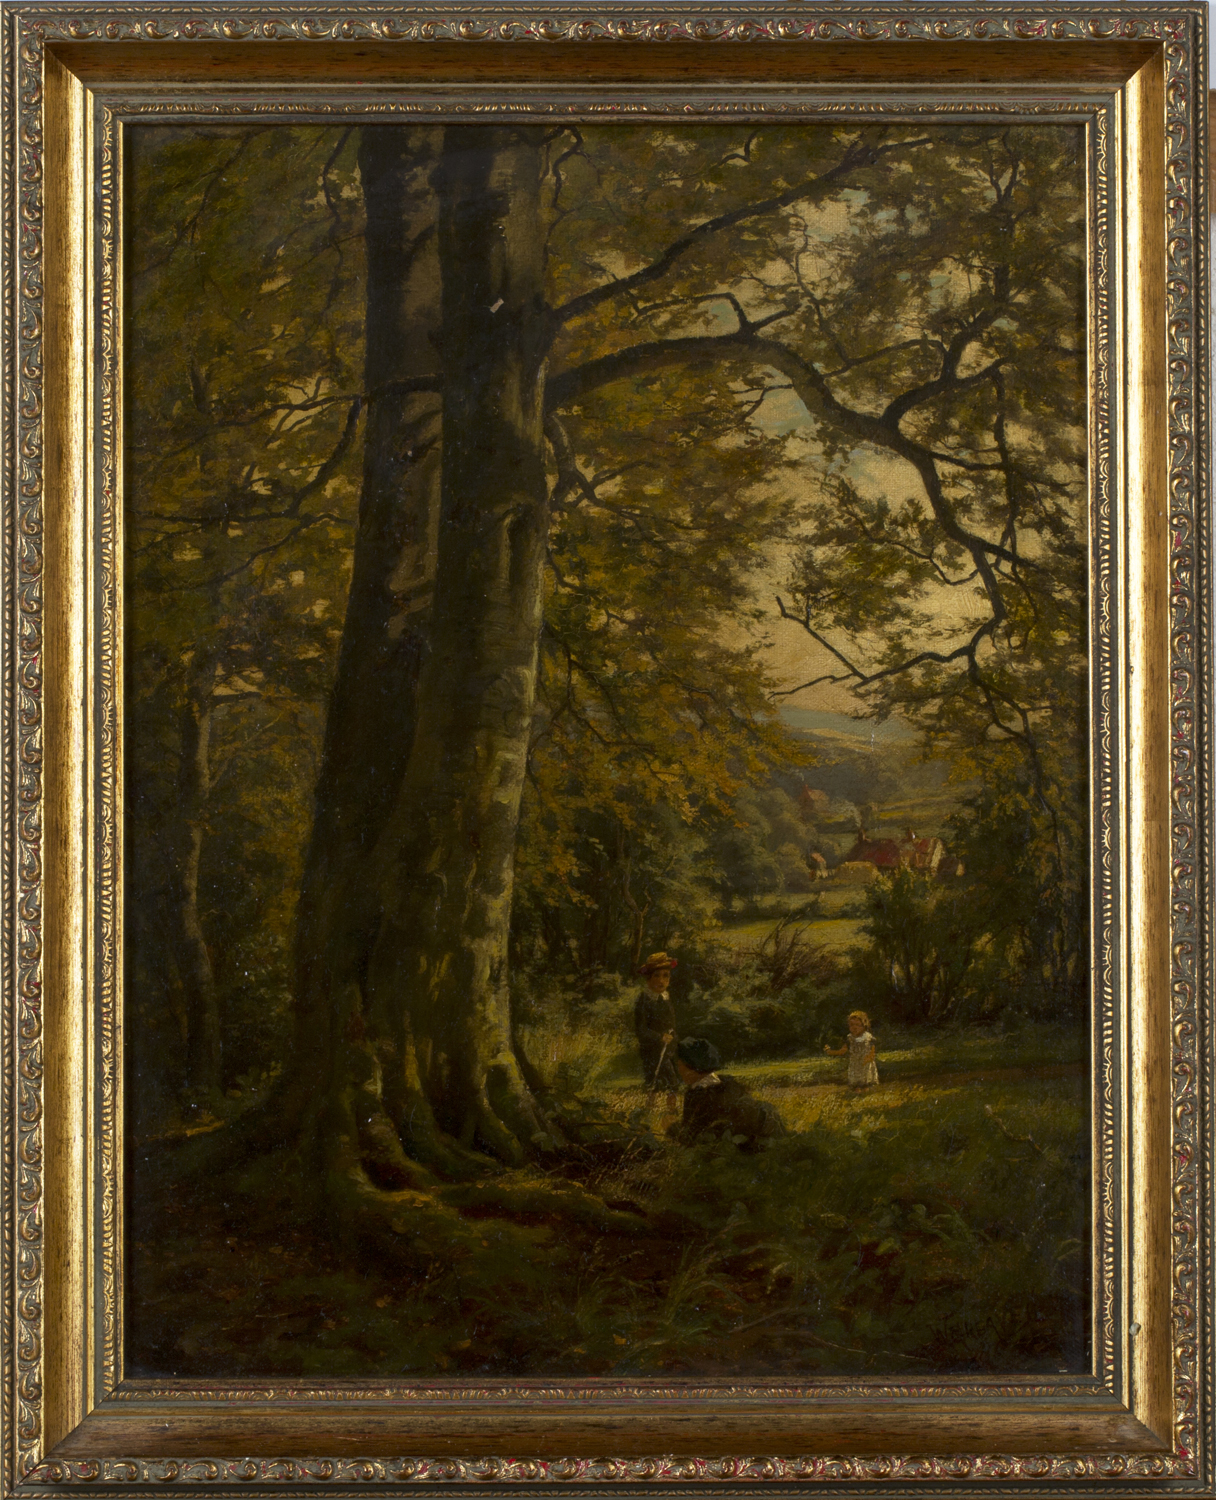 Lot 42 - William Greaves - Children under a Tree within a Landscape with Distant Farm, 19th century oil on